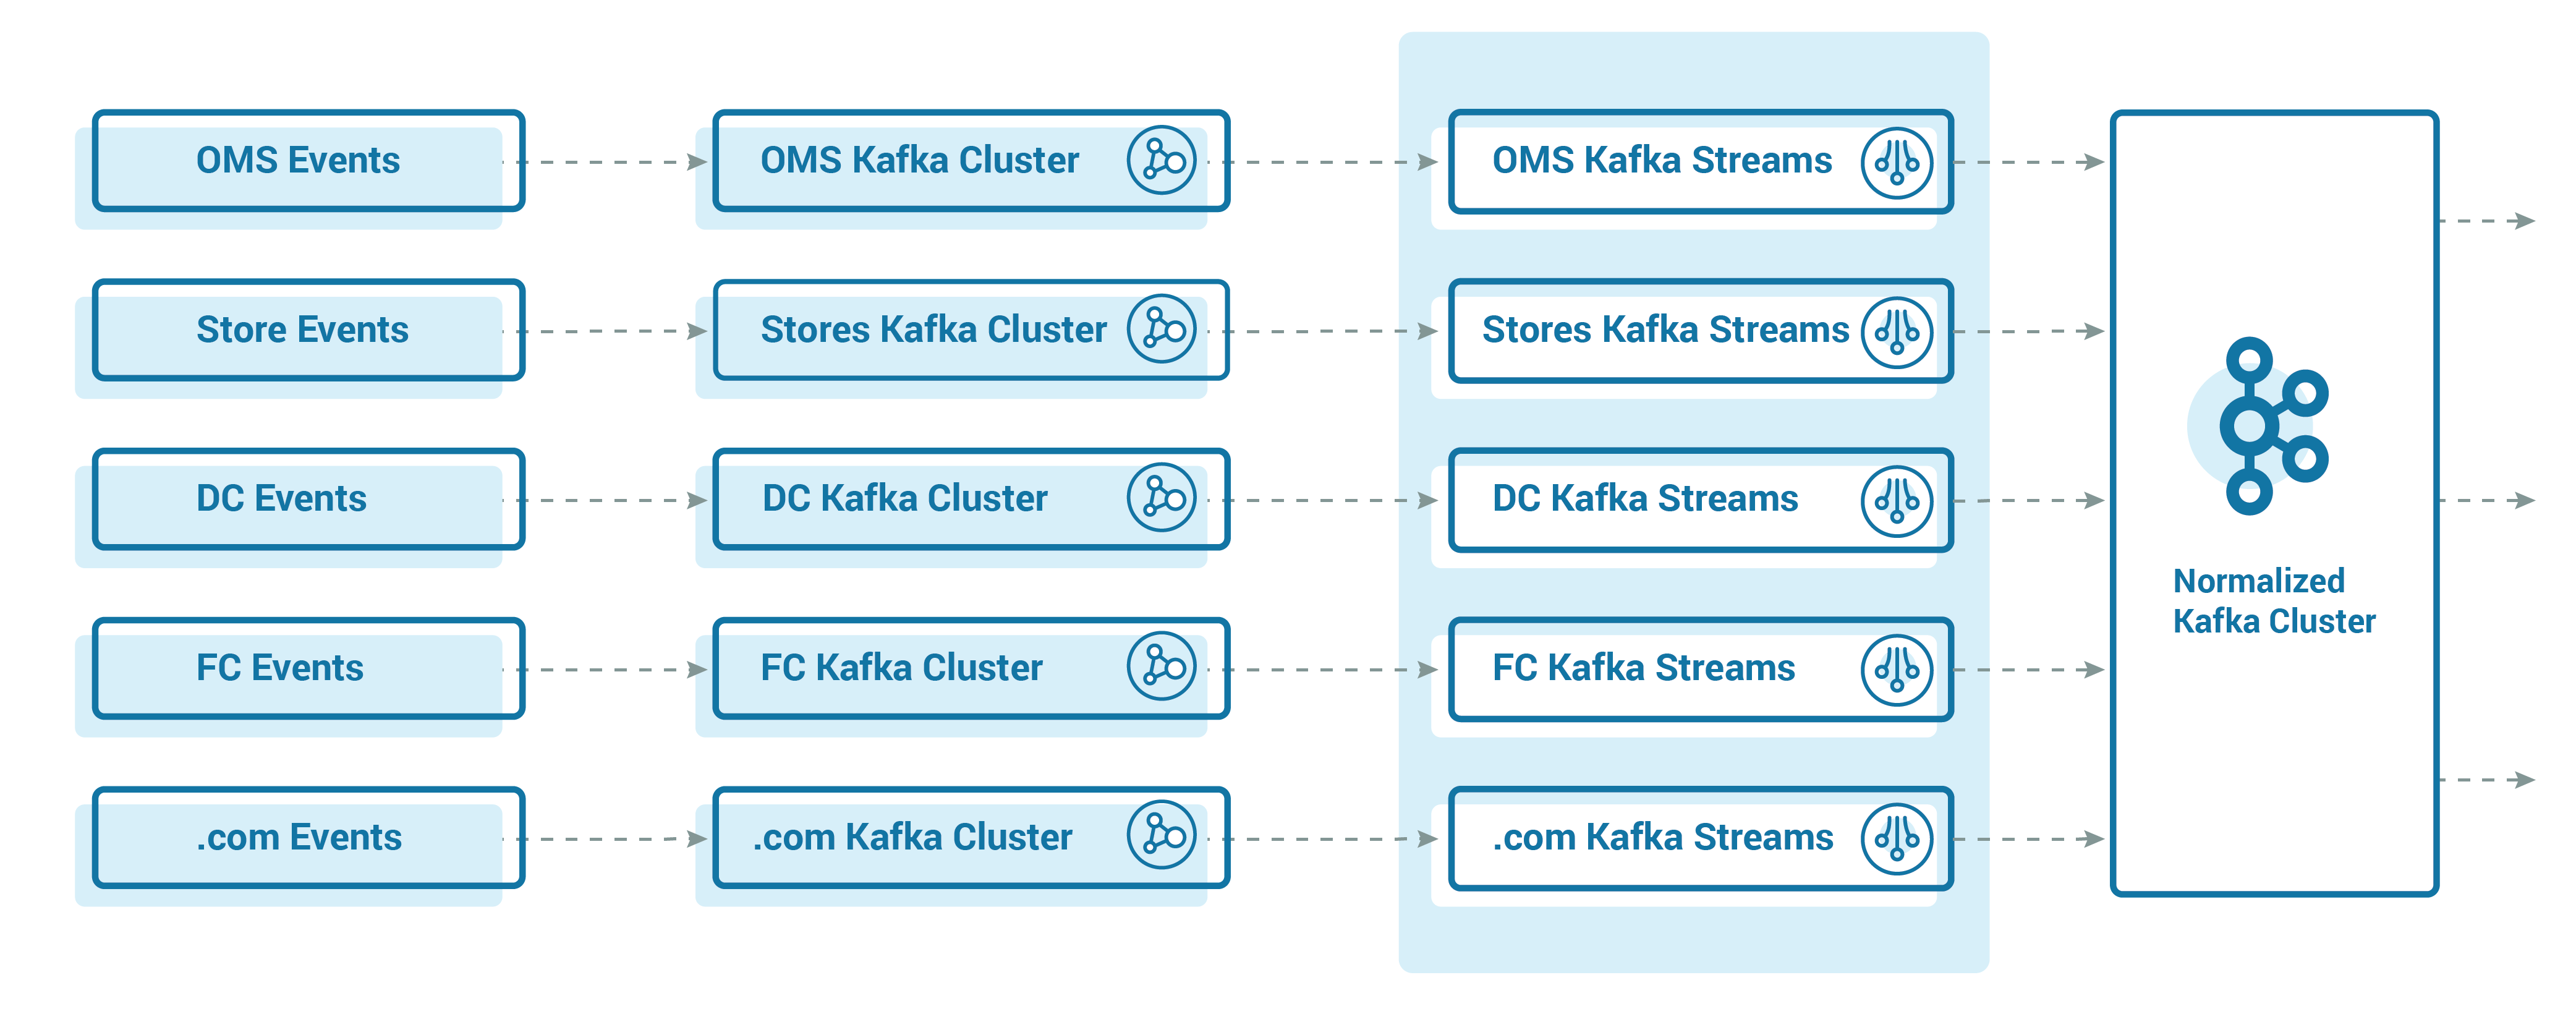 Events ➝ Kafka Cluster ➝ Kafka Streams ➝ Normalized Kafka Cluster